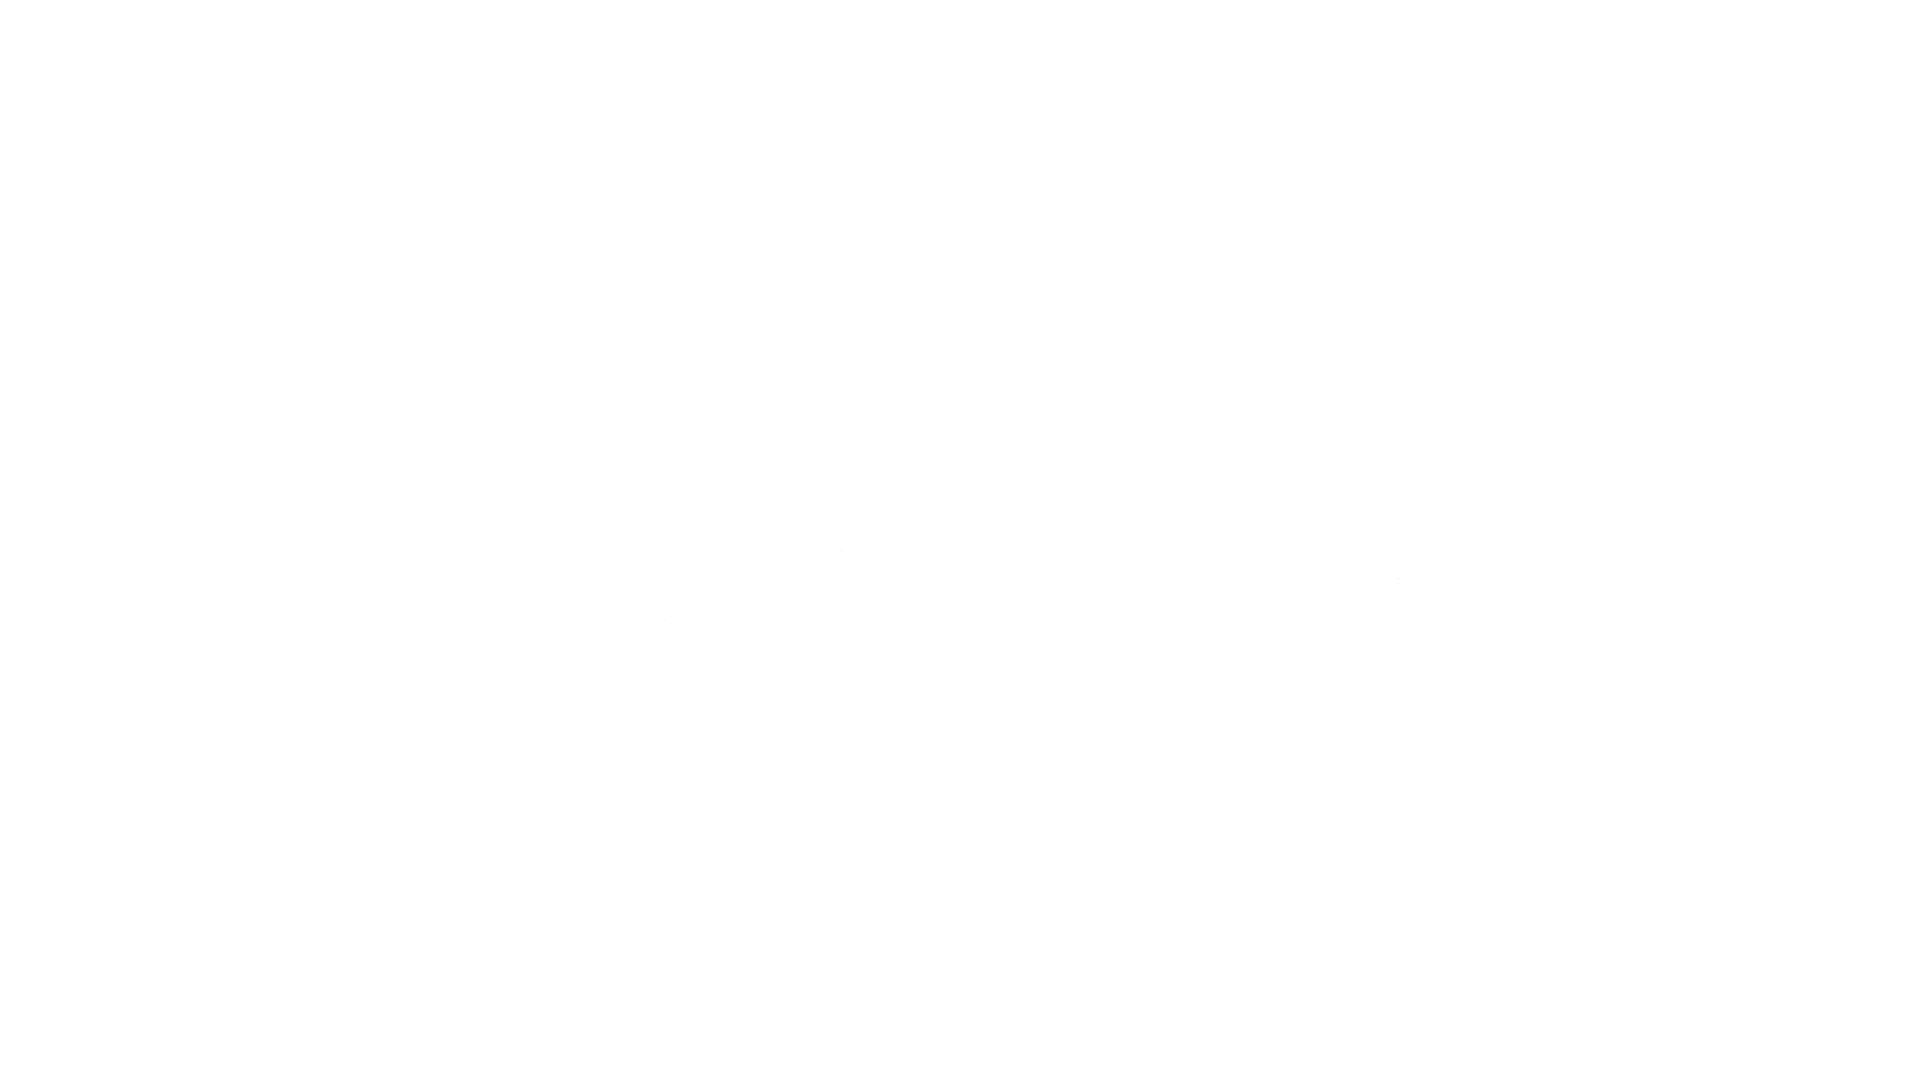 The Missing: Exploring the plight of the families of missing migrants